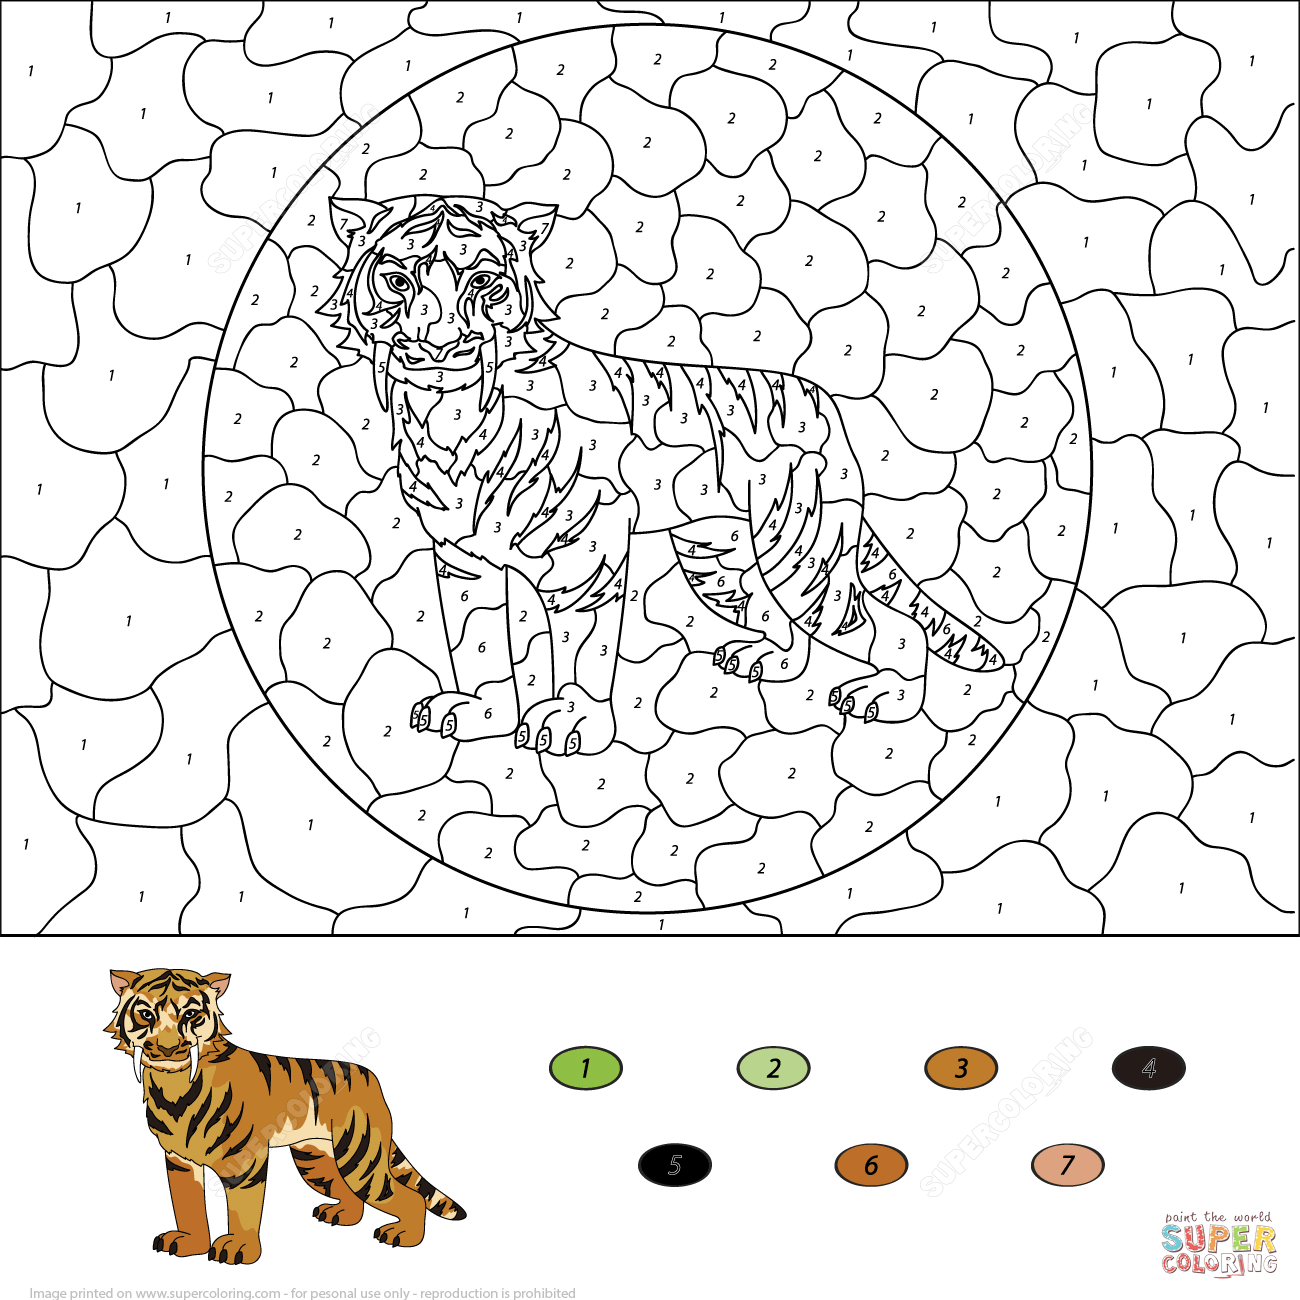 Saber Toothed Tiger Color By Number Free Printable Coloring Pages Coloring Pages Free Printable Coloring Pages Tinkerbell Coloring Pages